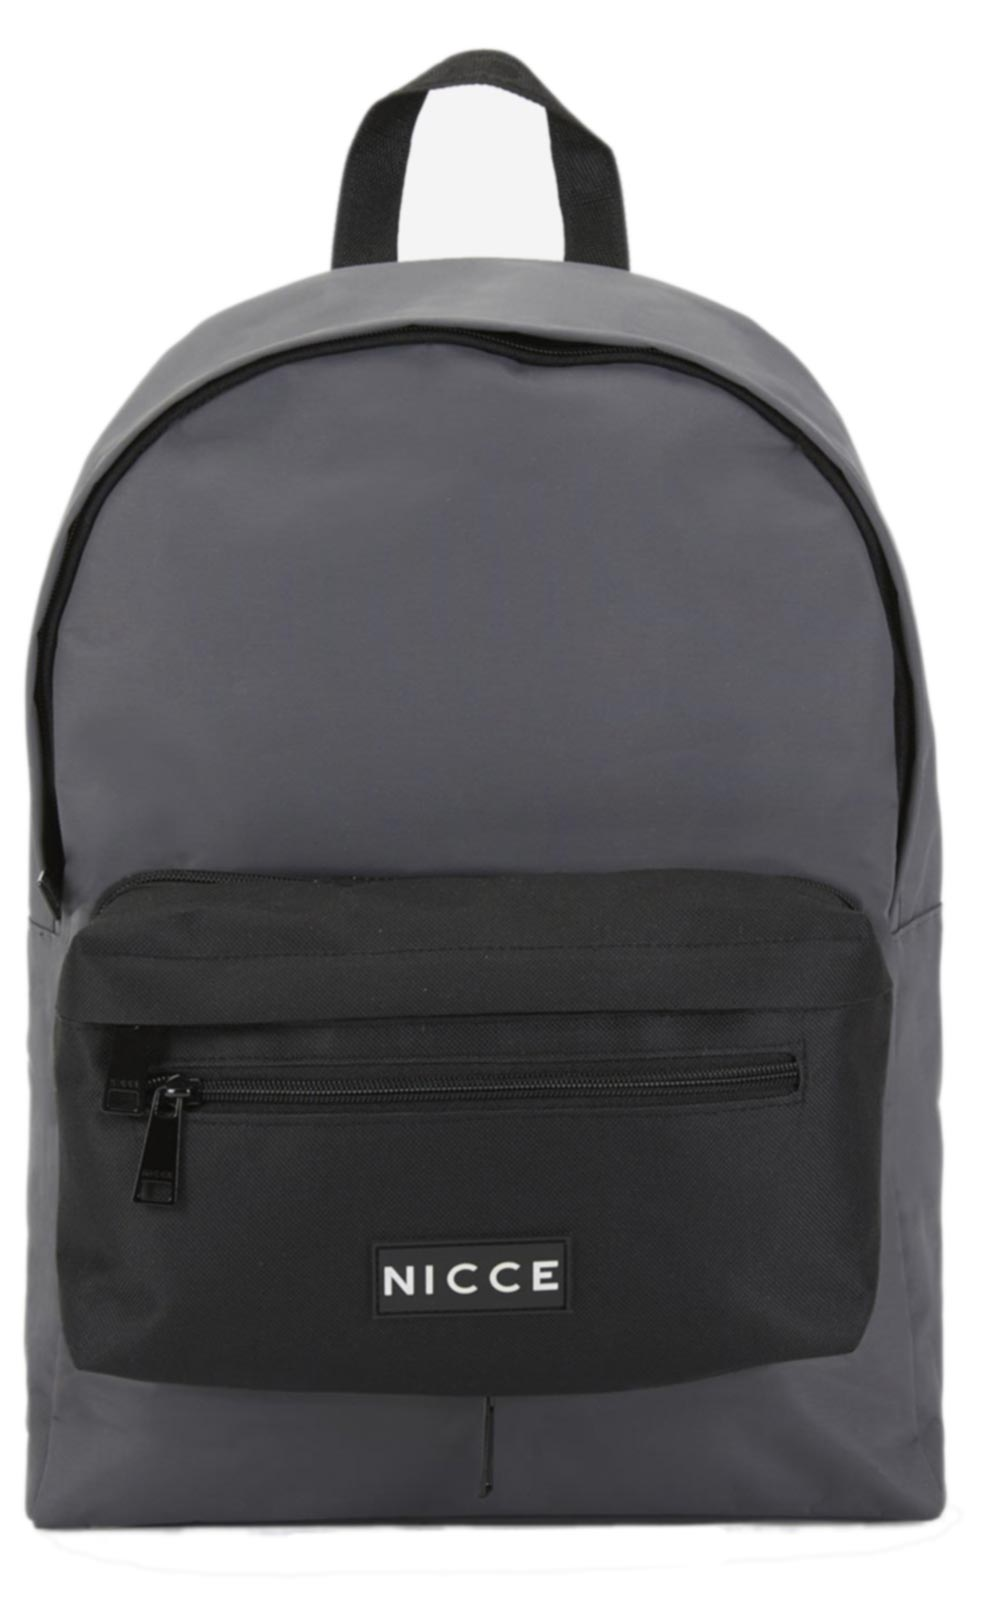 NICCE Detach Backpack Bag Black